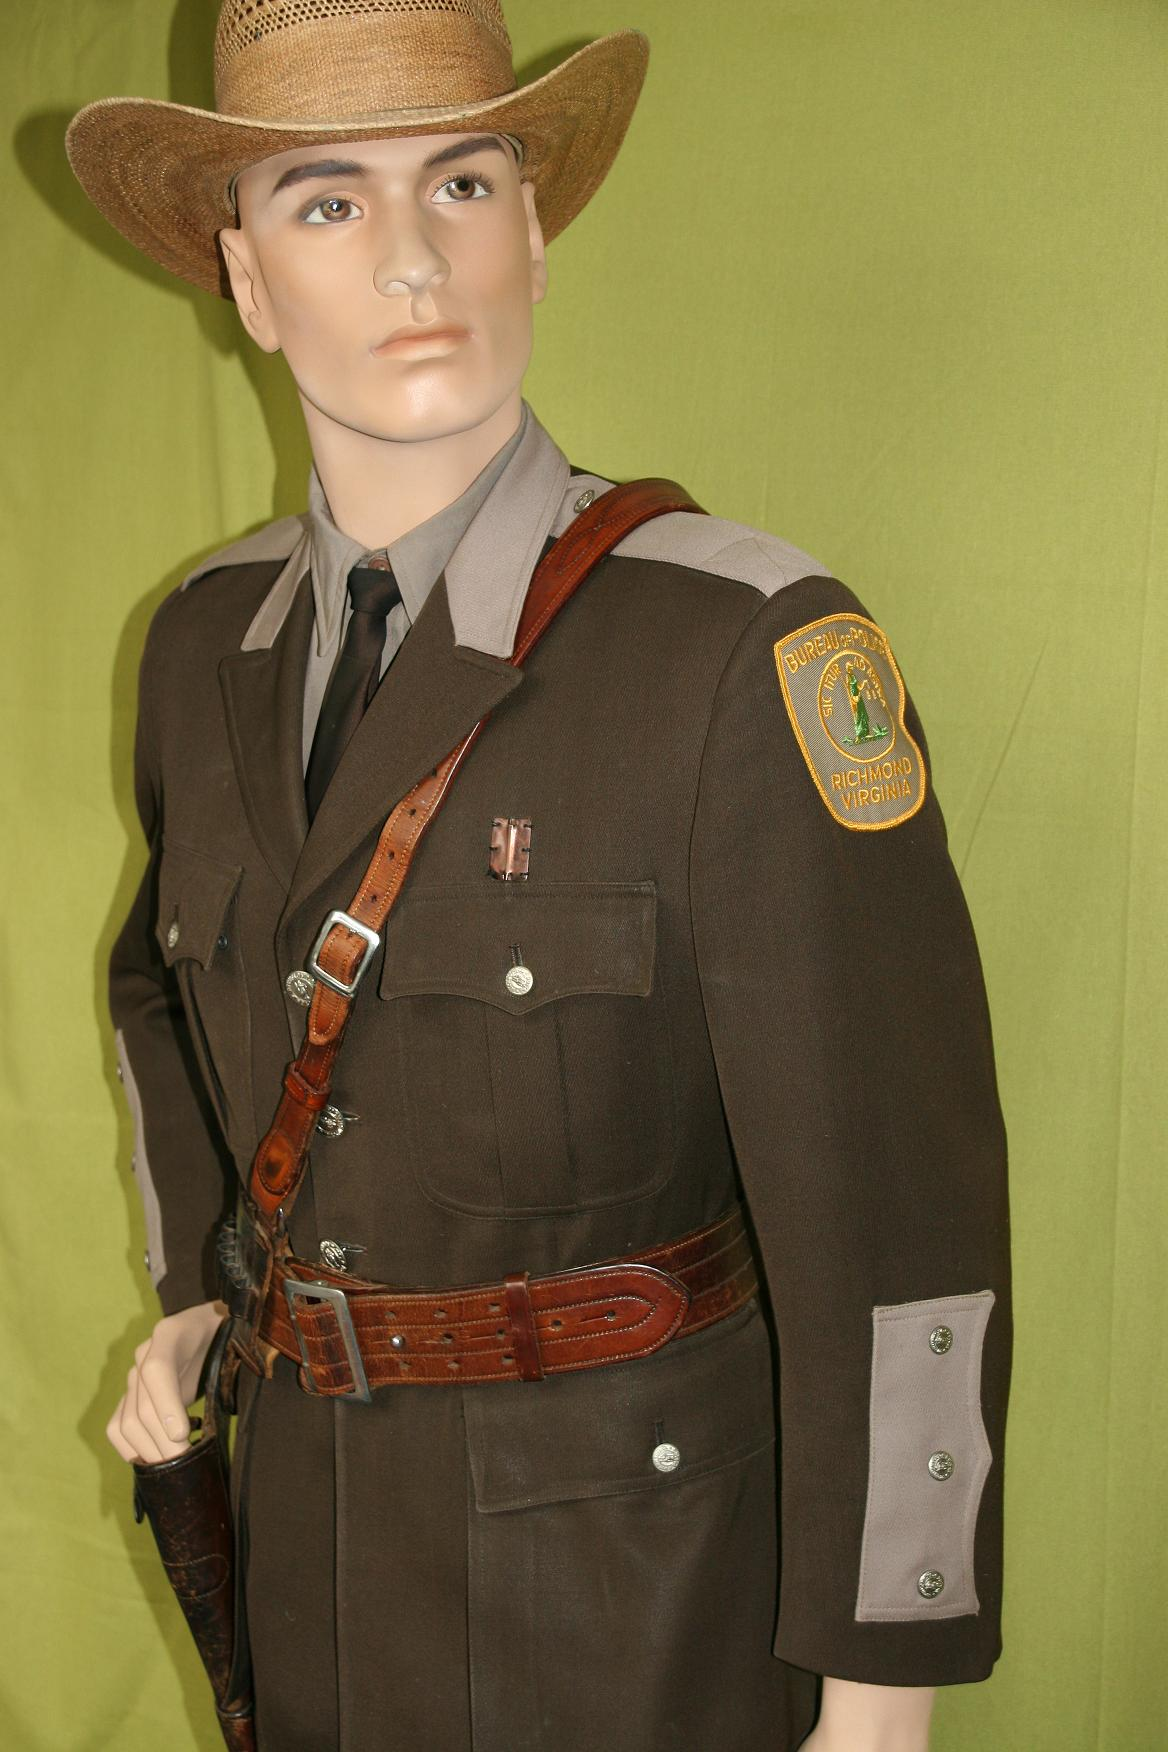 Shop usa sheriff uniform richmond virginia bureau of for Bureau uniform